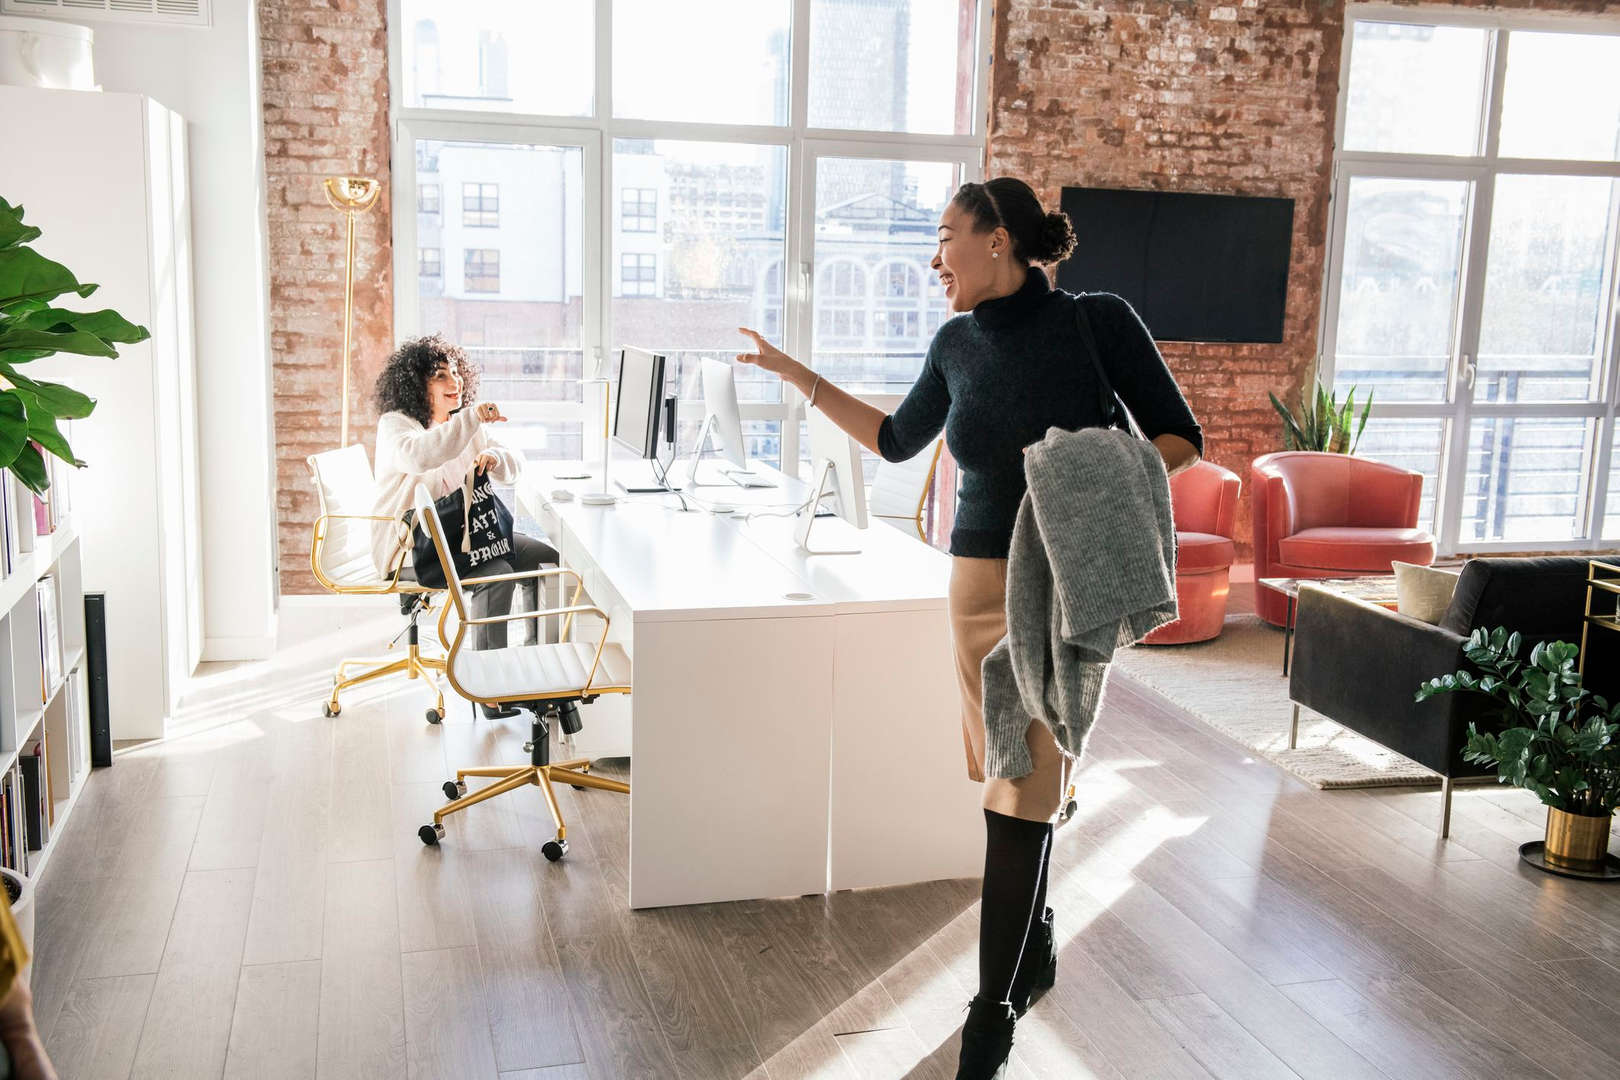 Woman leaving office waving to colleague